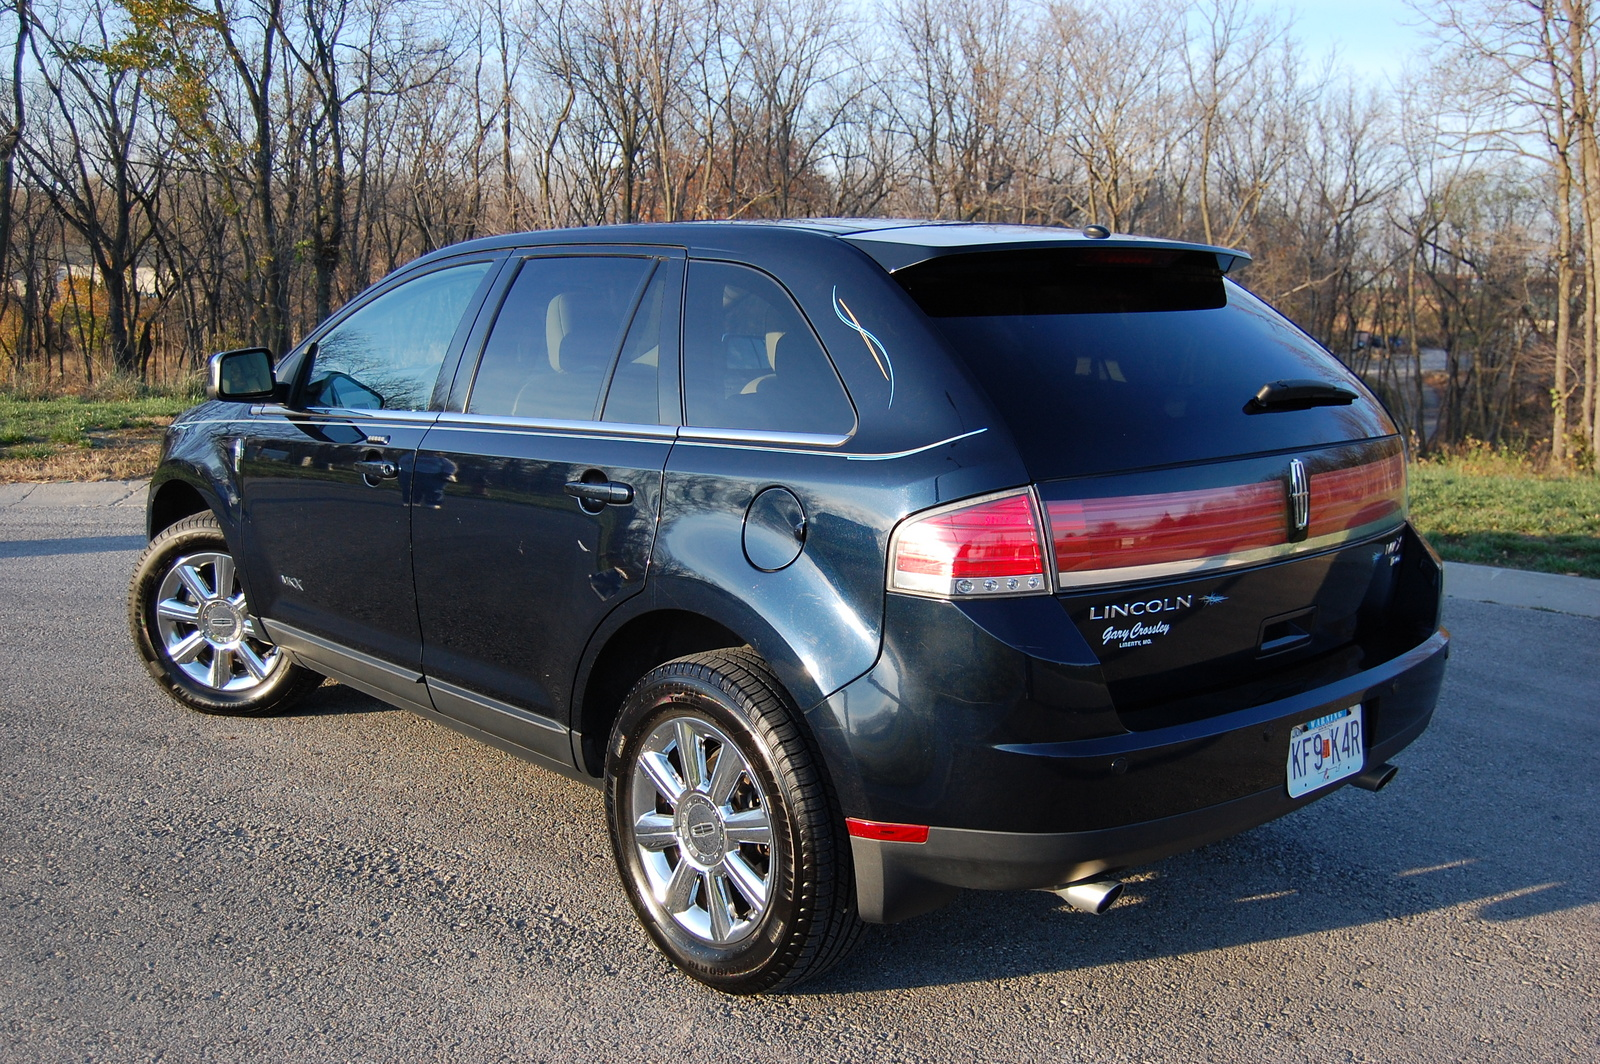 2008 Lincoln MKX - Pictures - CarGurus